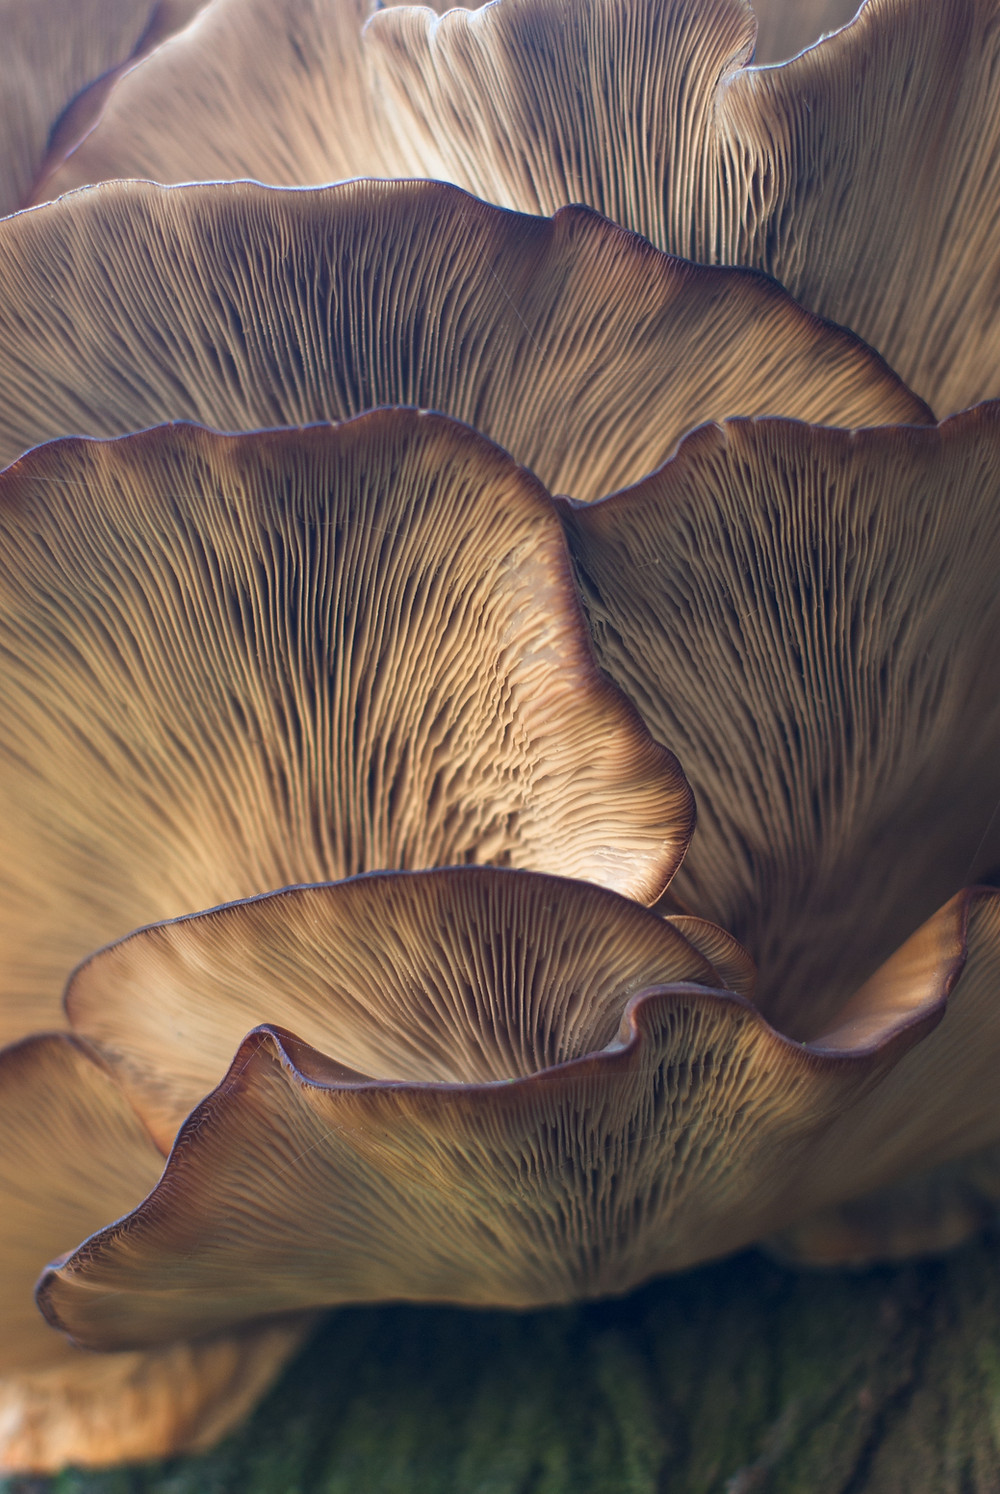 Layers of mushrooms featuring the Gills, which are the underside of the mushroom caps.